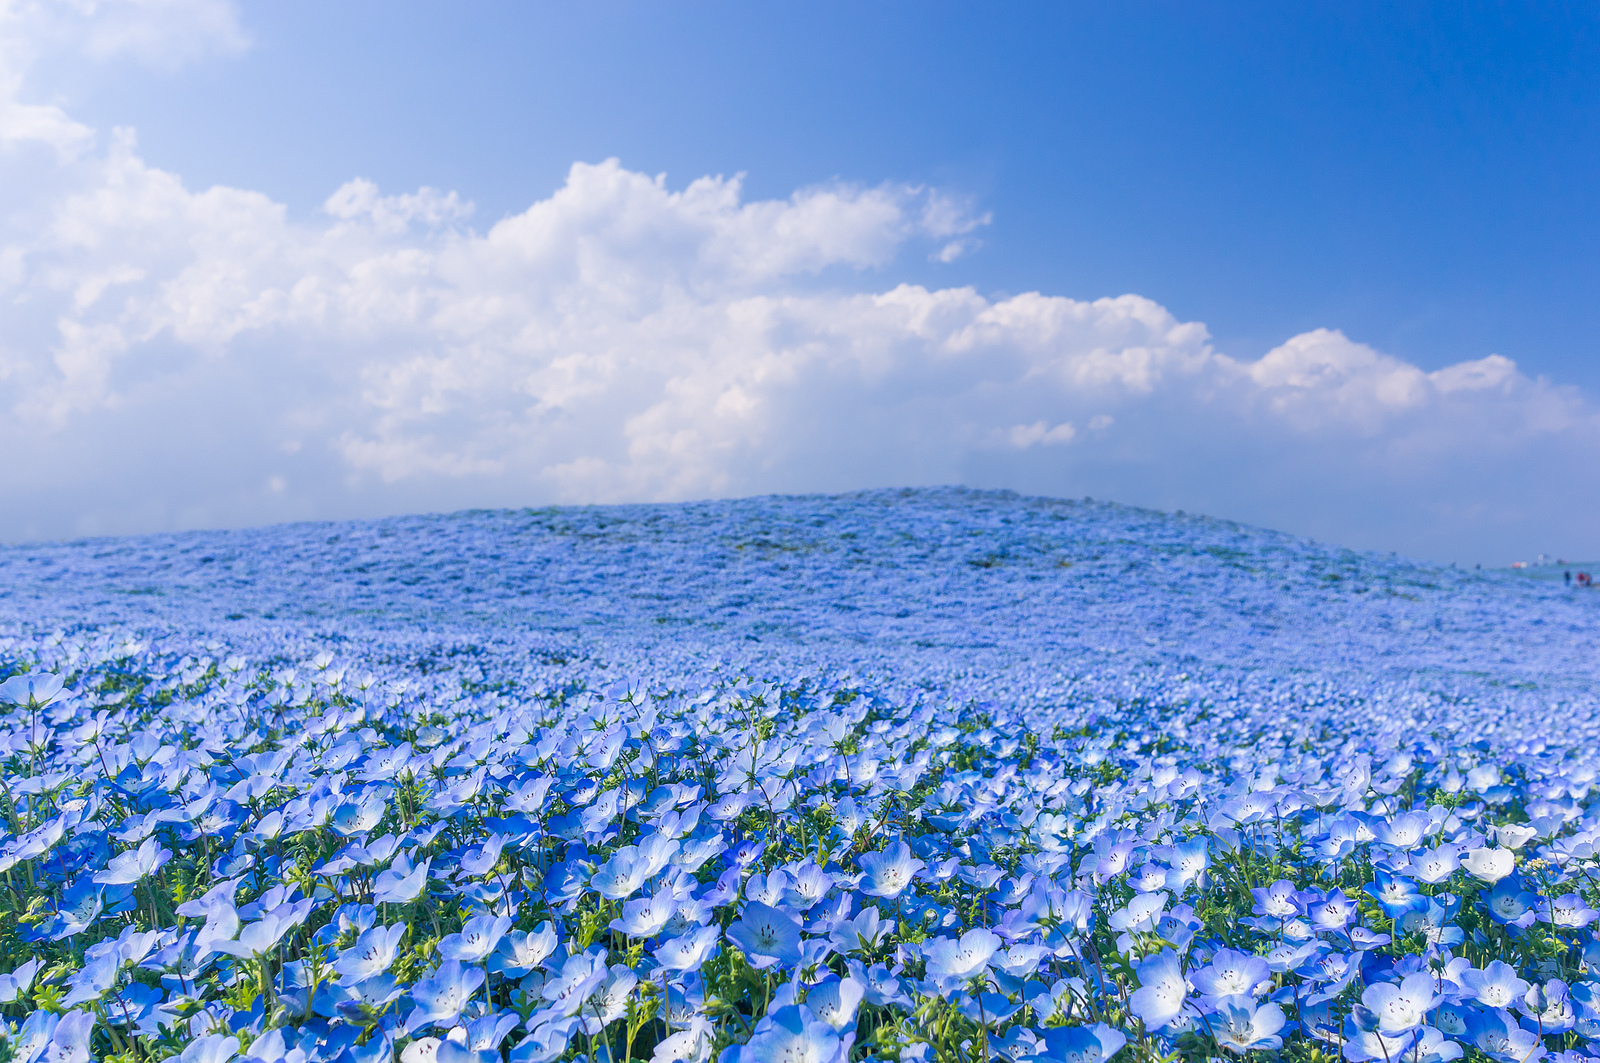 A Sea of 4.5 Million Baby Blue Eye Flowers in Japans Hitachi Seaside Park Japan flowers